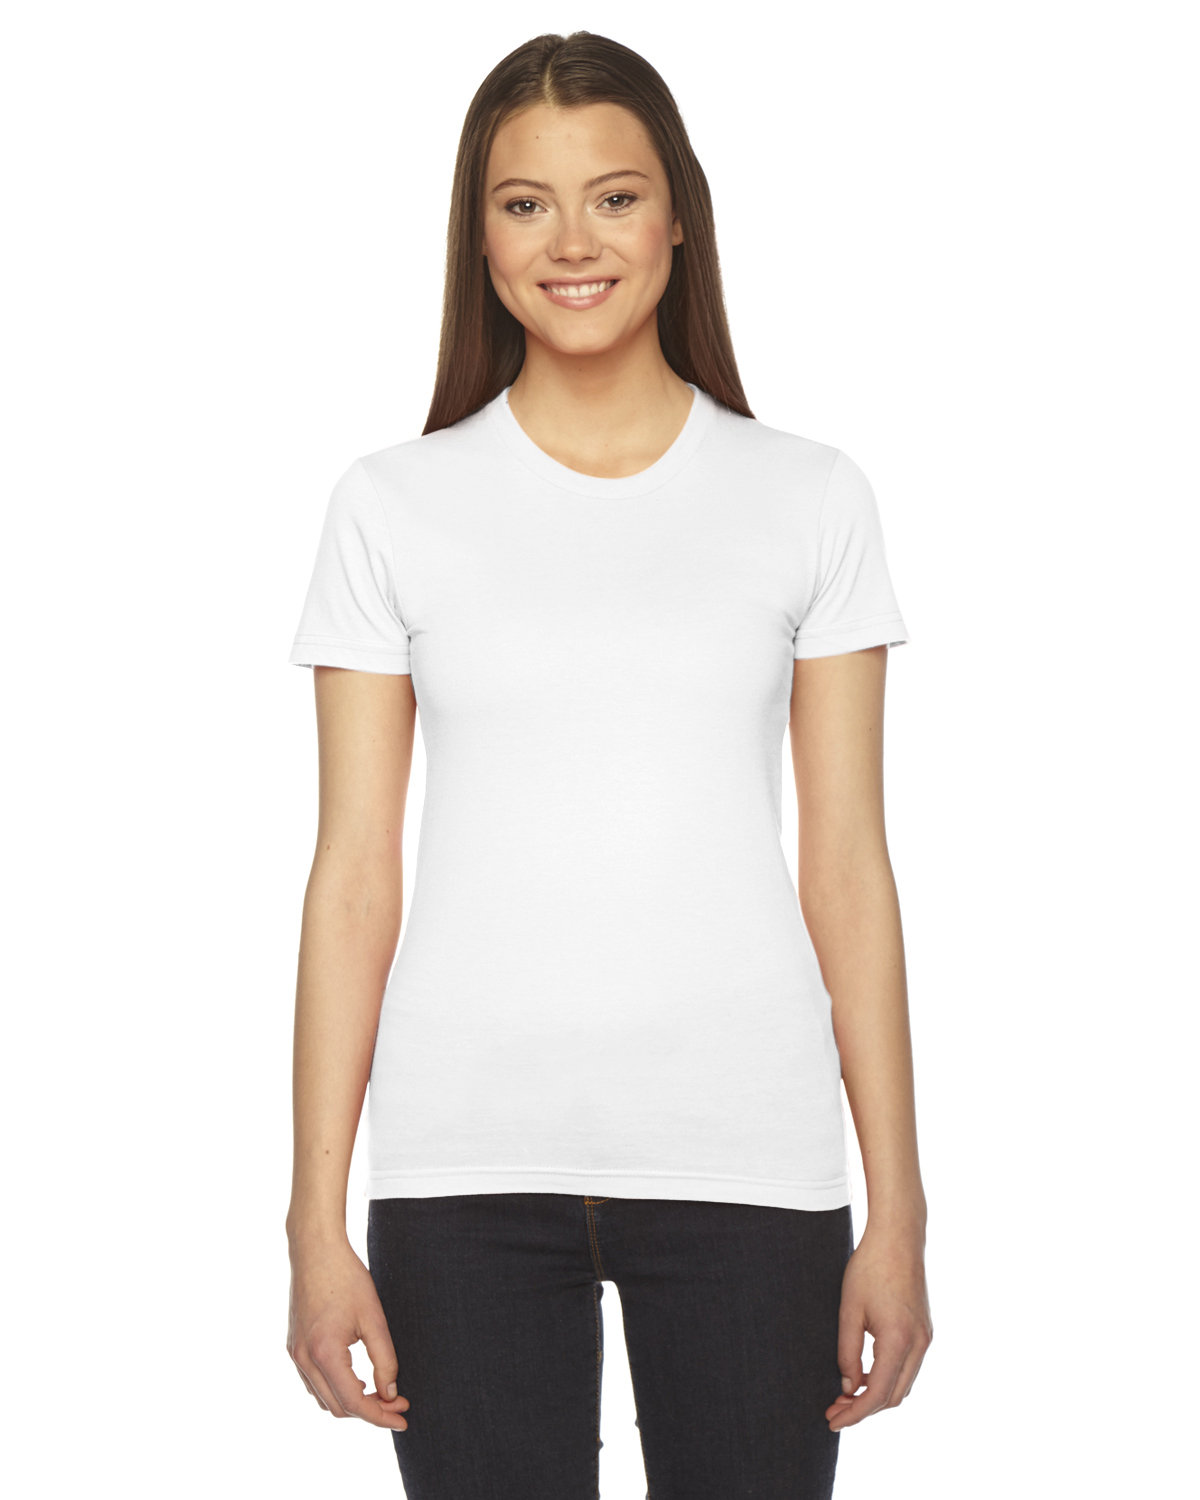 American Apparel Ladies' Fine Jersey Short-Sleeve T-Shirt WHITE